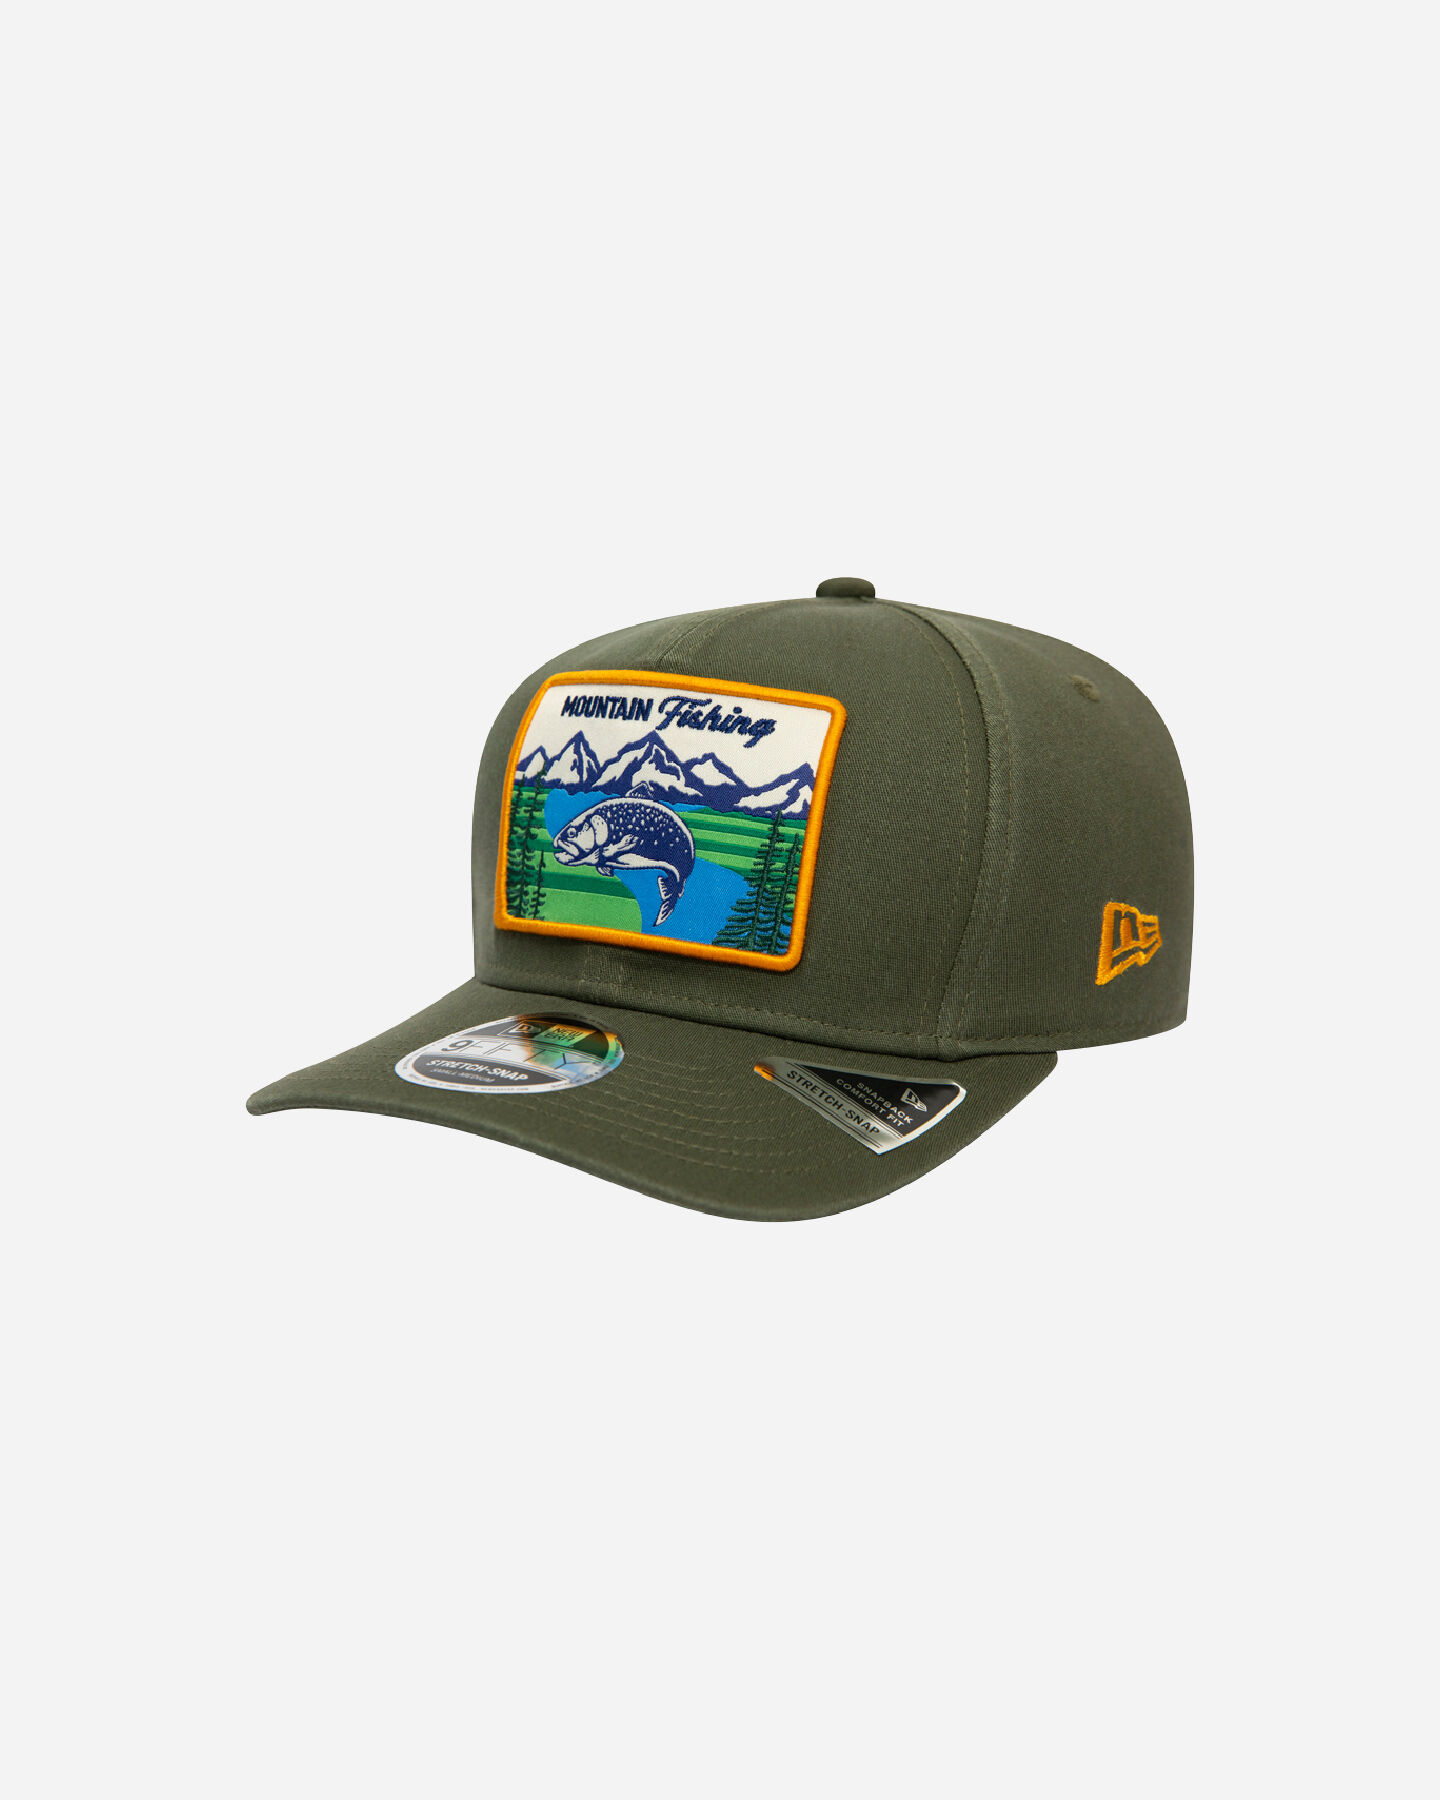 Cappellino NEW ERA 9FIFTY STRETCH SNAP OUTDOOR  S5239037 scatto 0